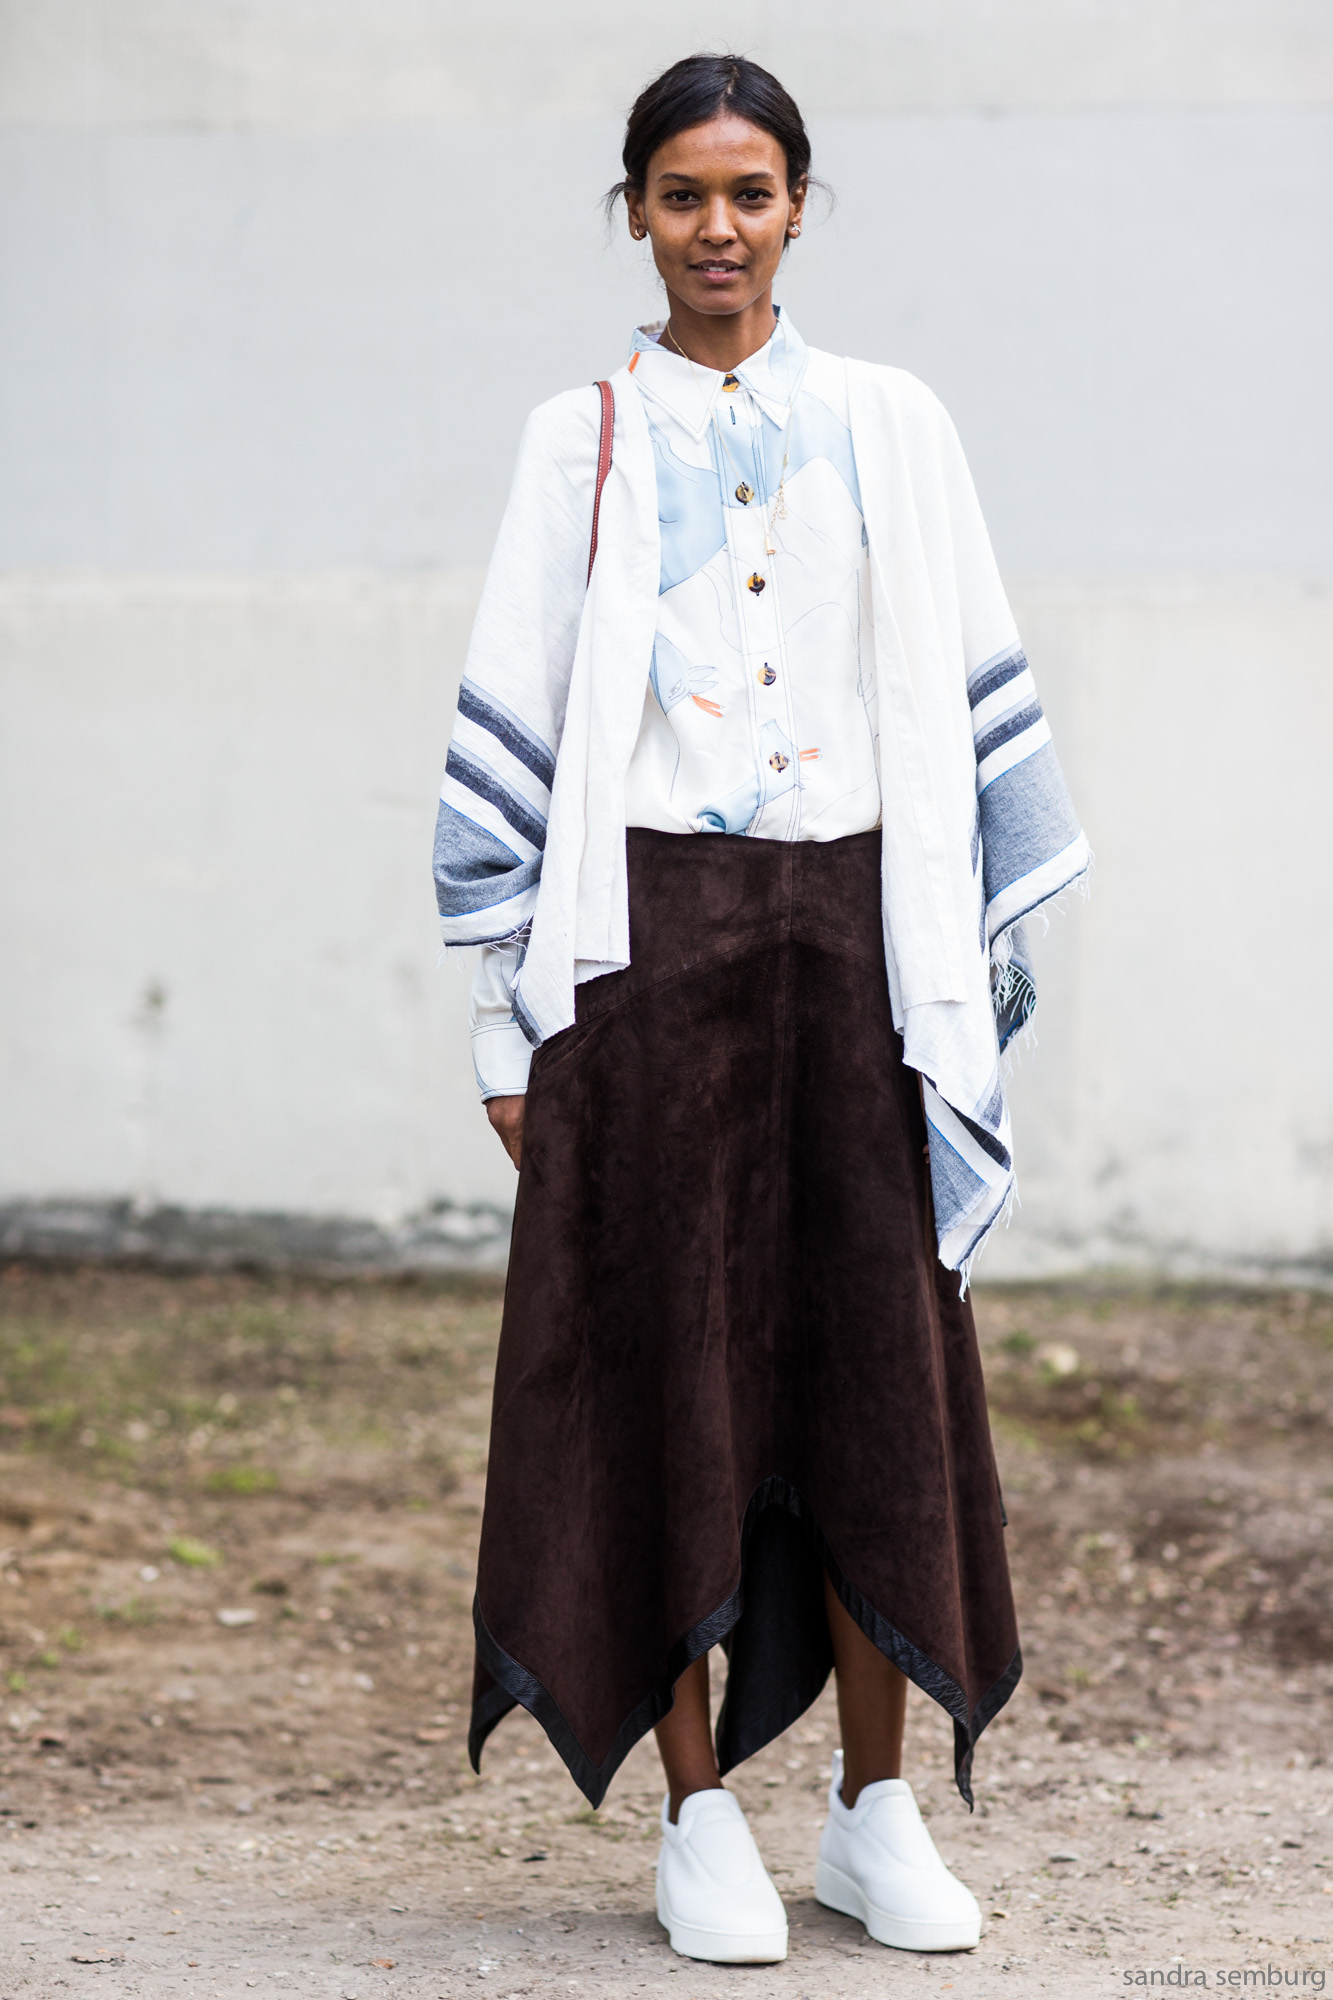 ParisFW_SS2016_day5_sandrasemburg-20151004-1641